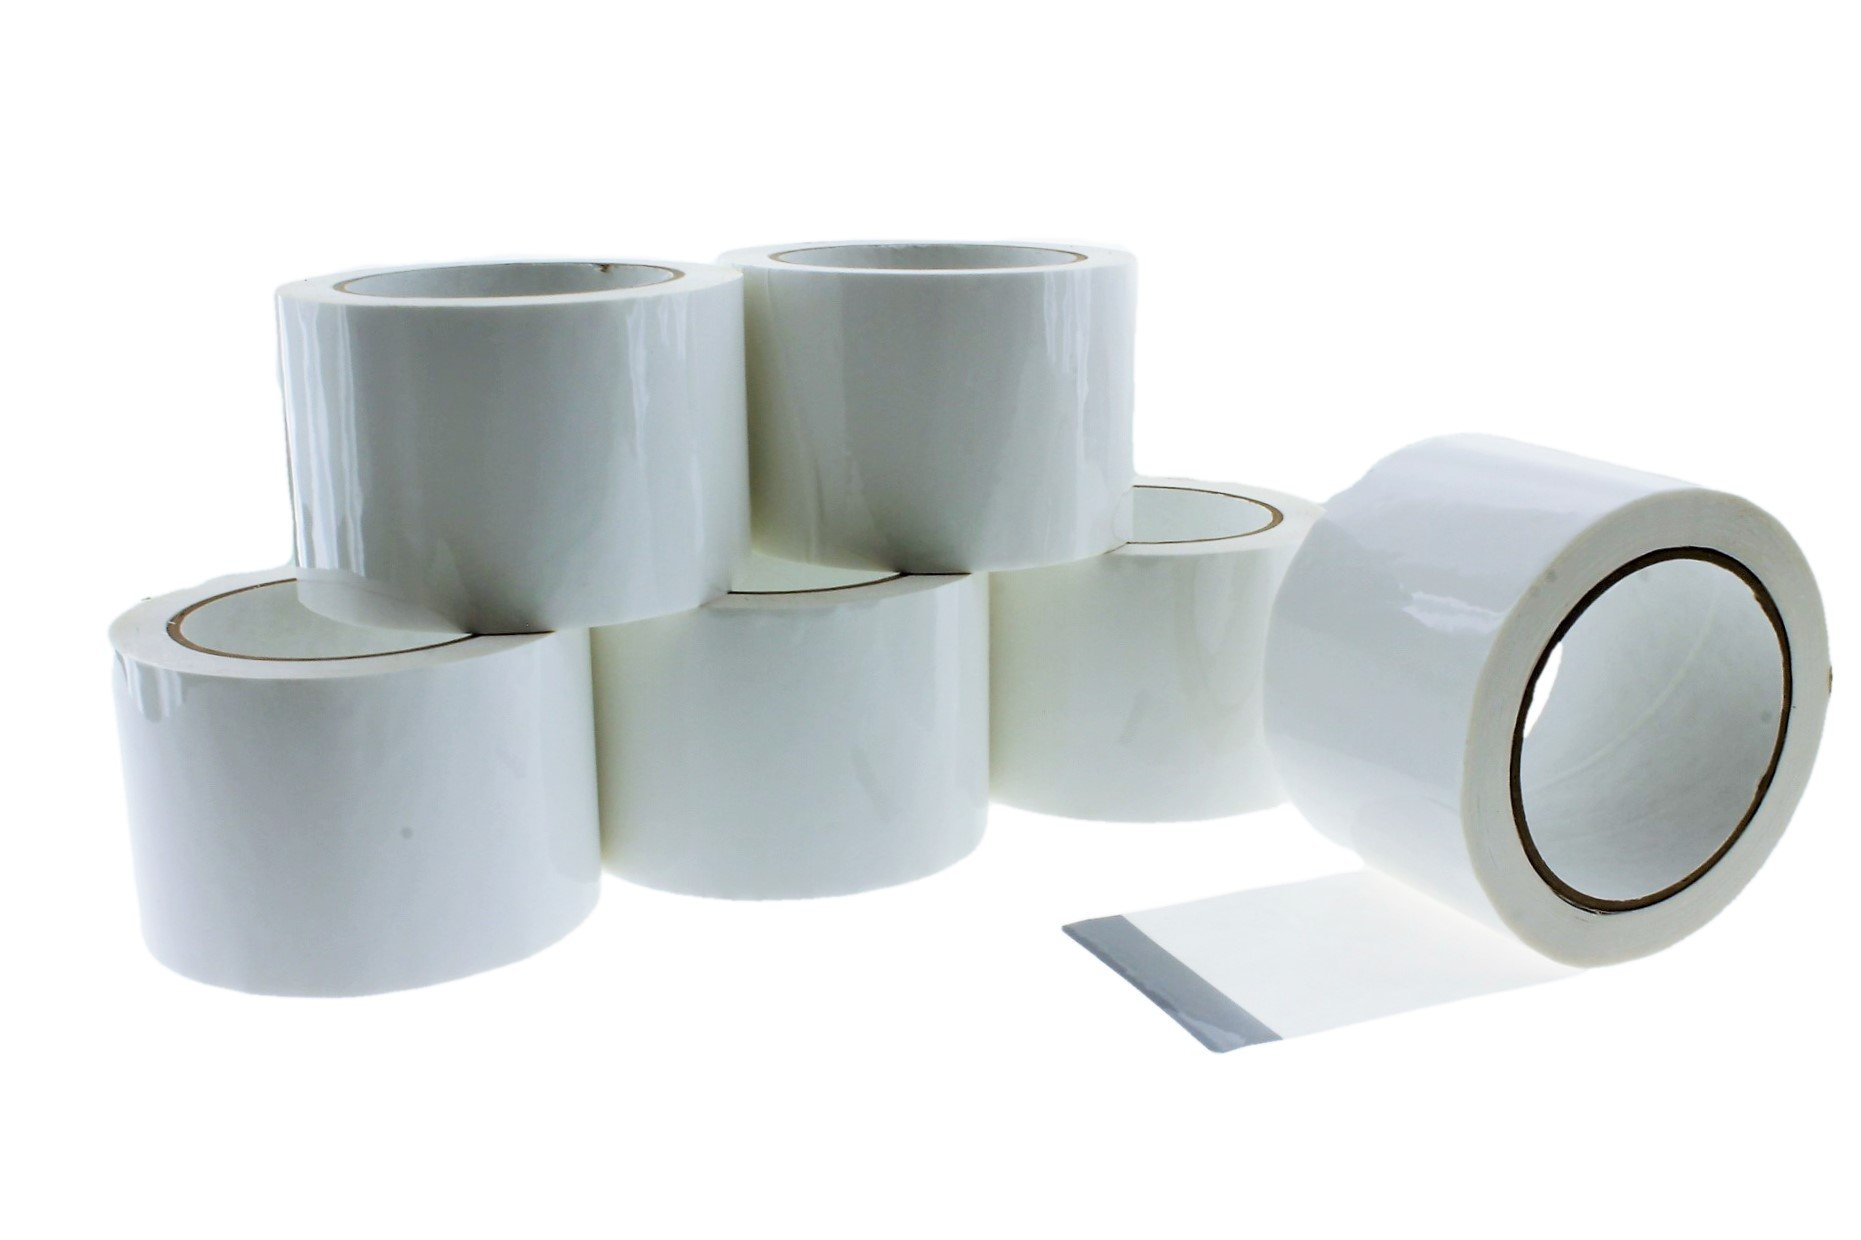 6pk 3'' in x 60 yd White House Wrap Tape Sheathing Building Wrapping Housewrap Sheath Tape Insulation Seaming Plastic Sheets Sealing TYVEK Construction Moisture Dust barrier Asbestos Abatement by TapeSmith